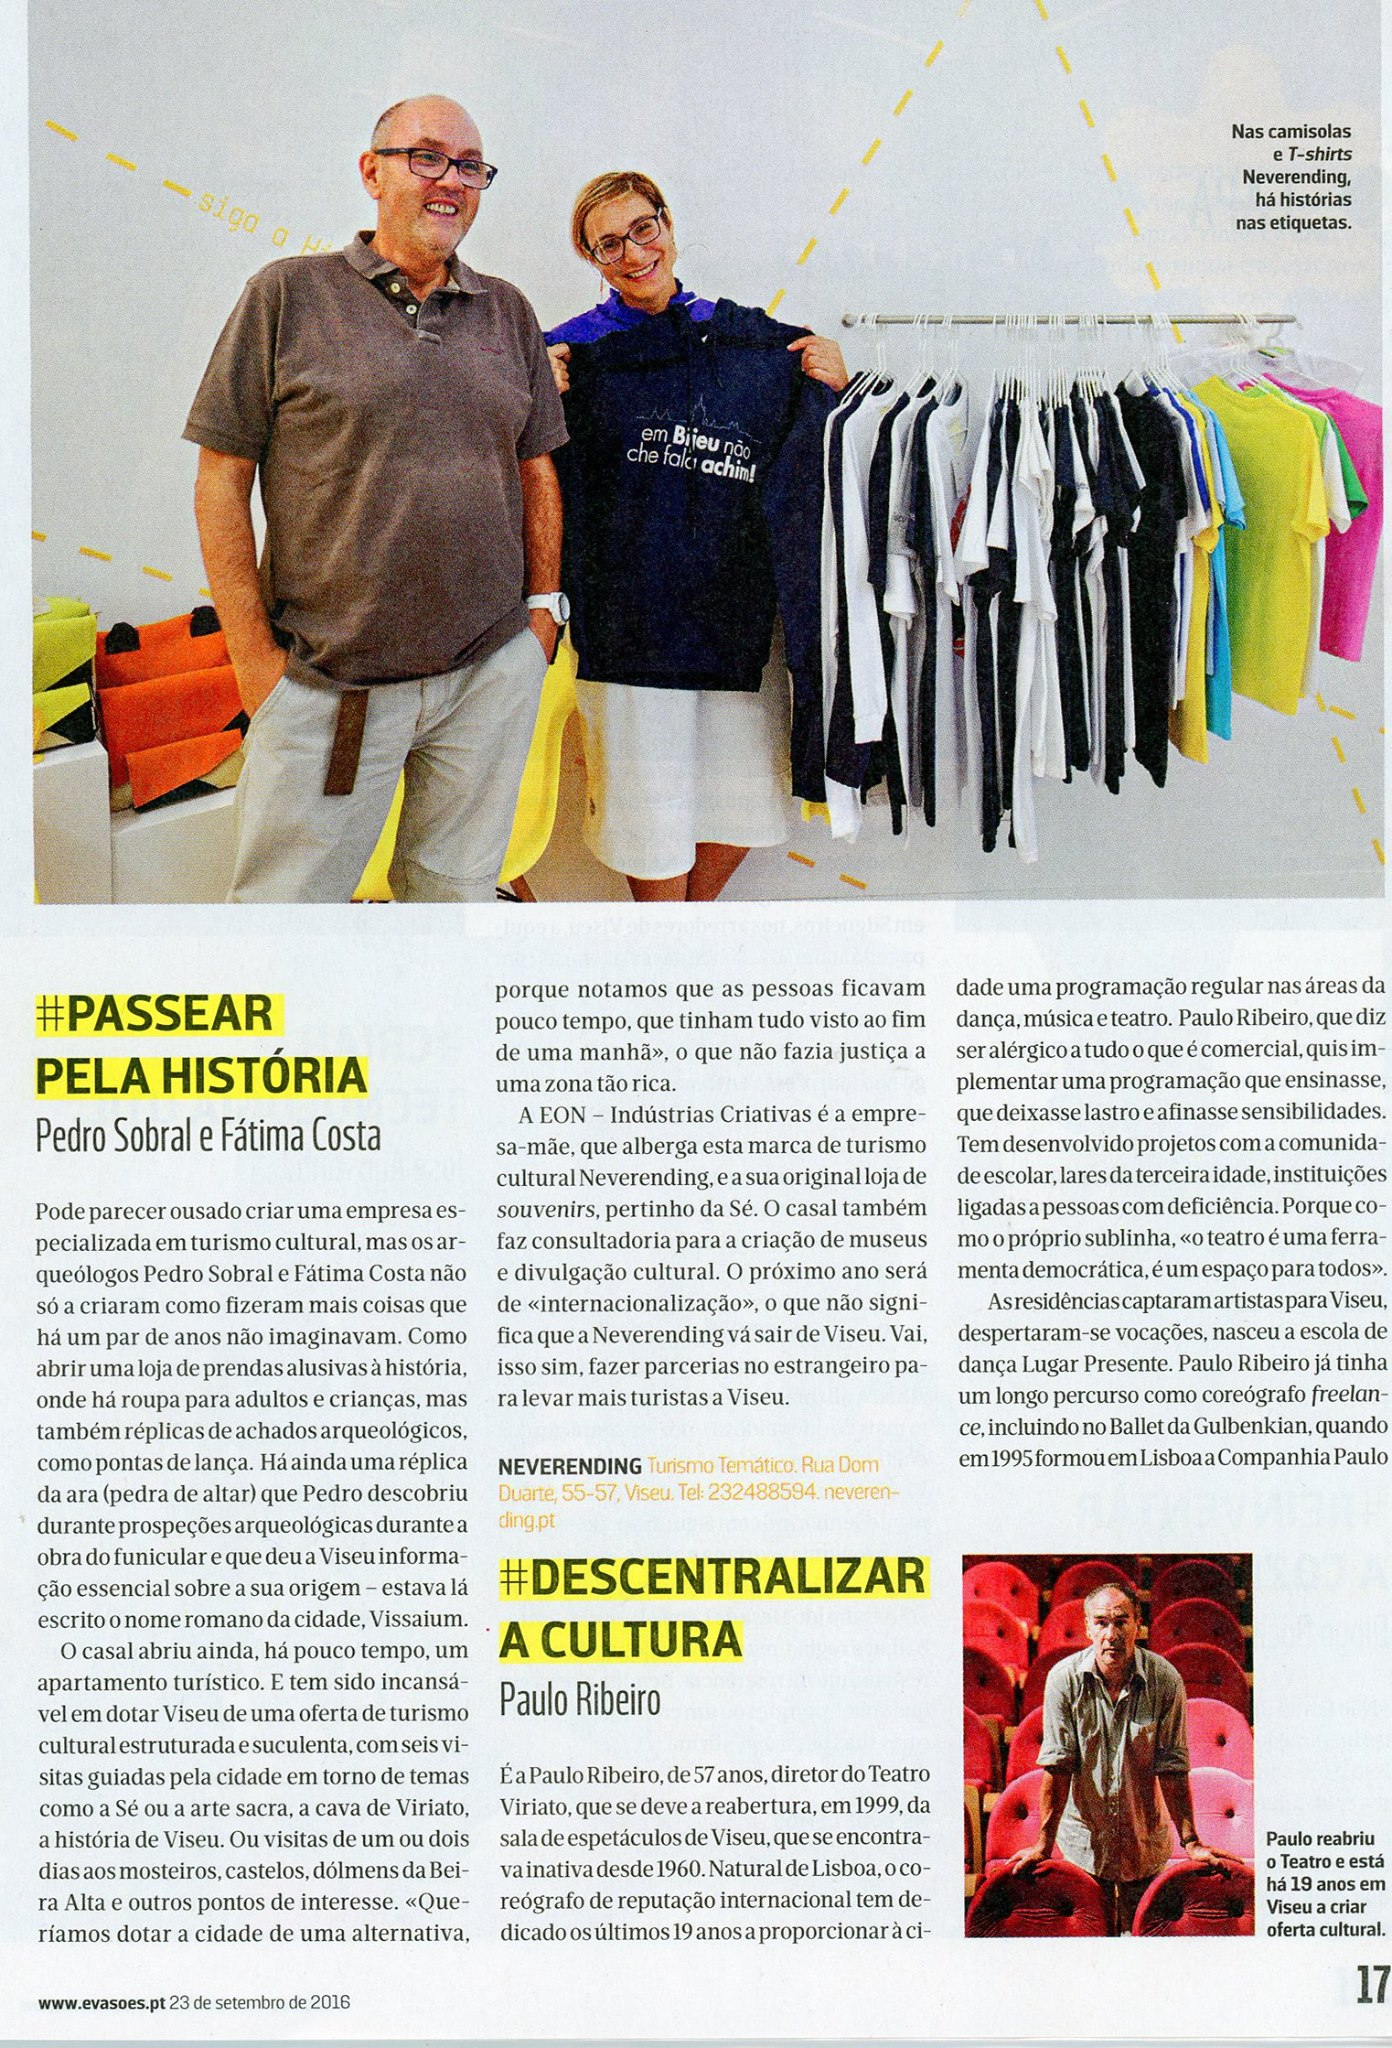 Neverending na revista Evasões